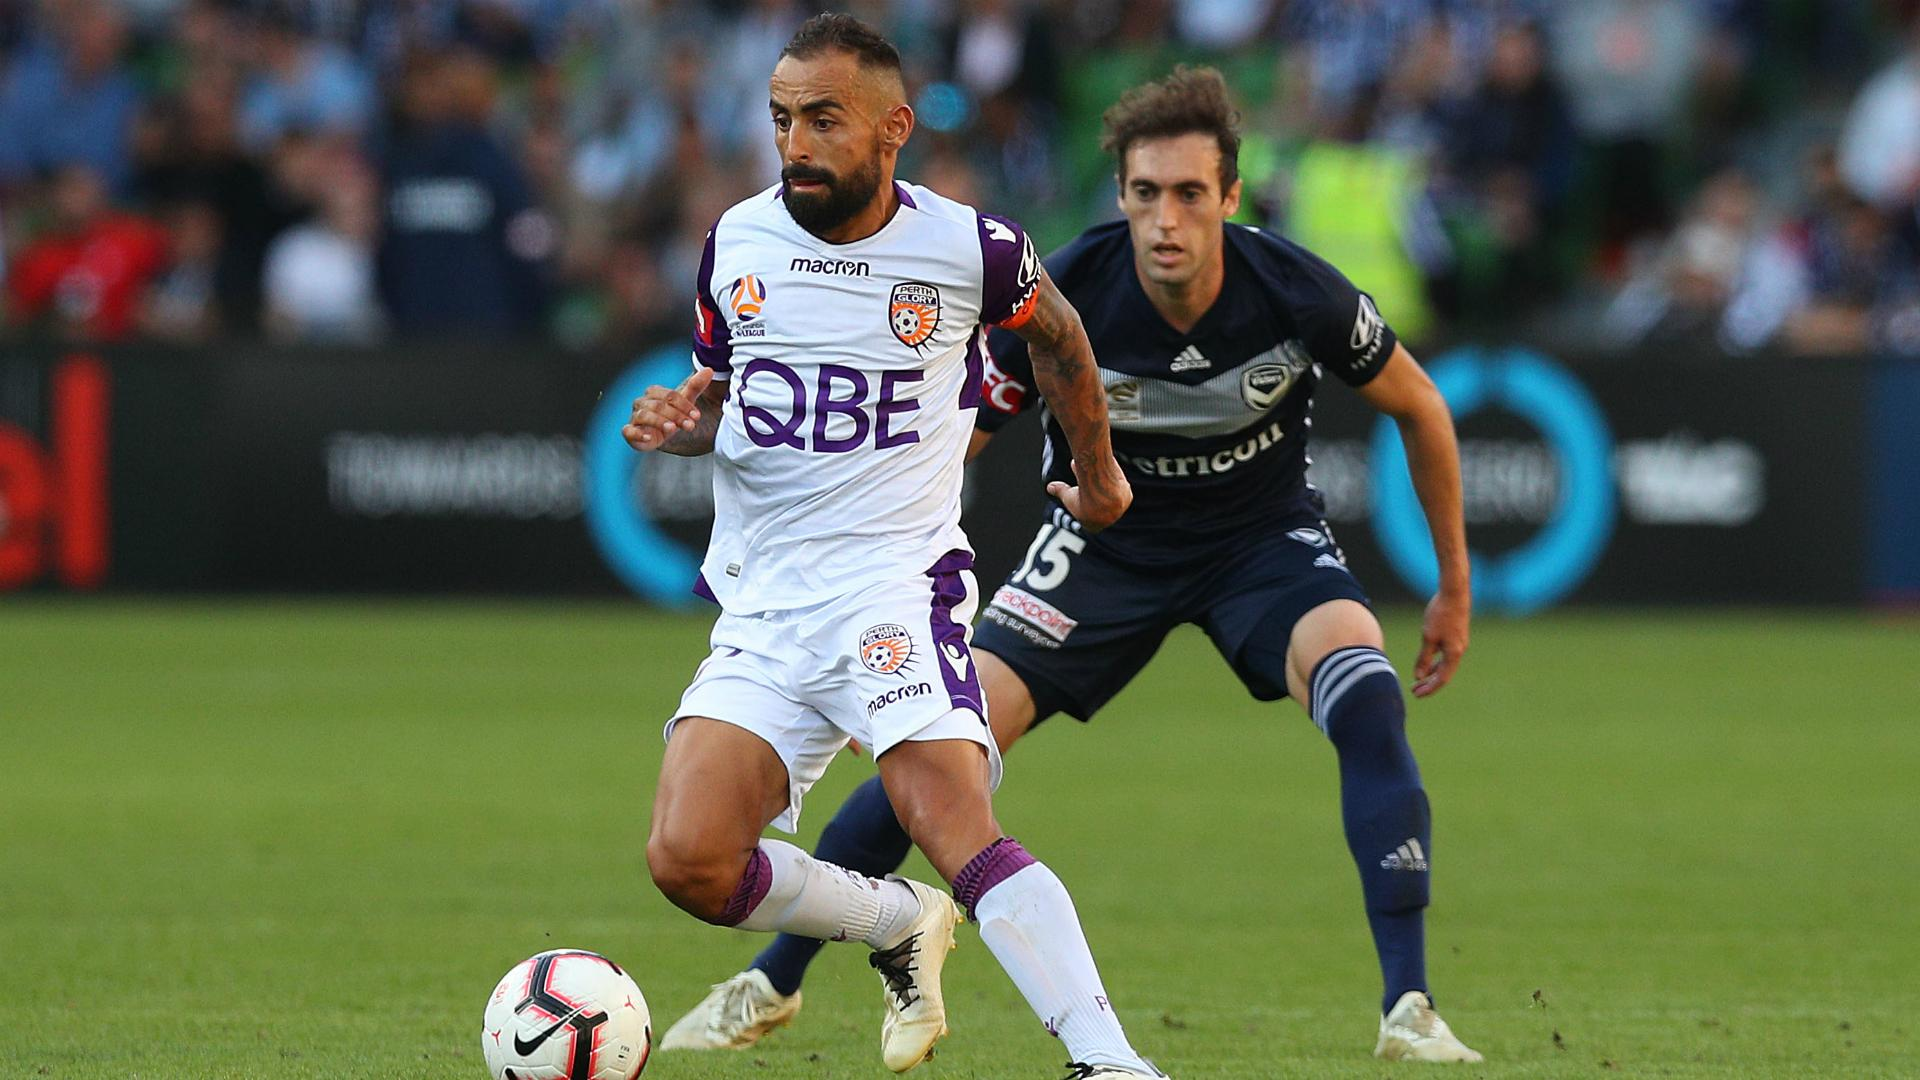 Melbourne Victory vs Perth Glory: how many goals to be scored?